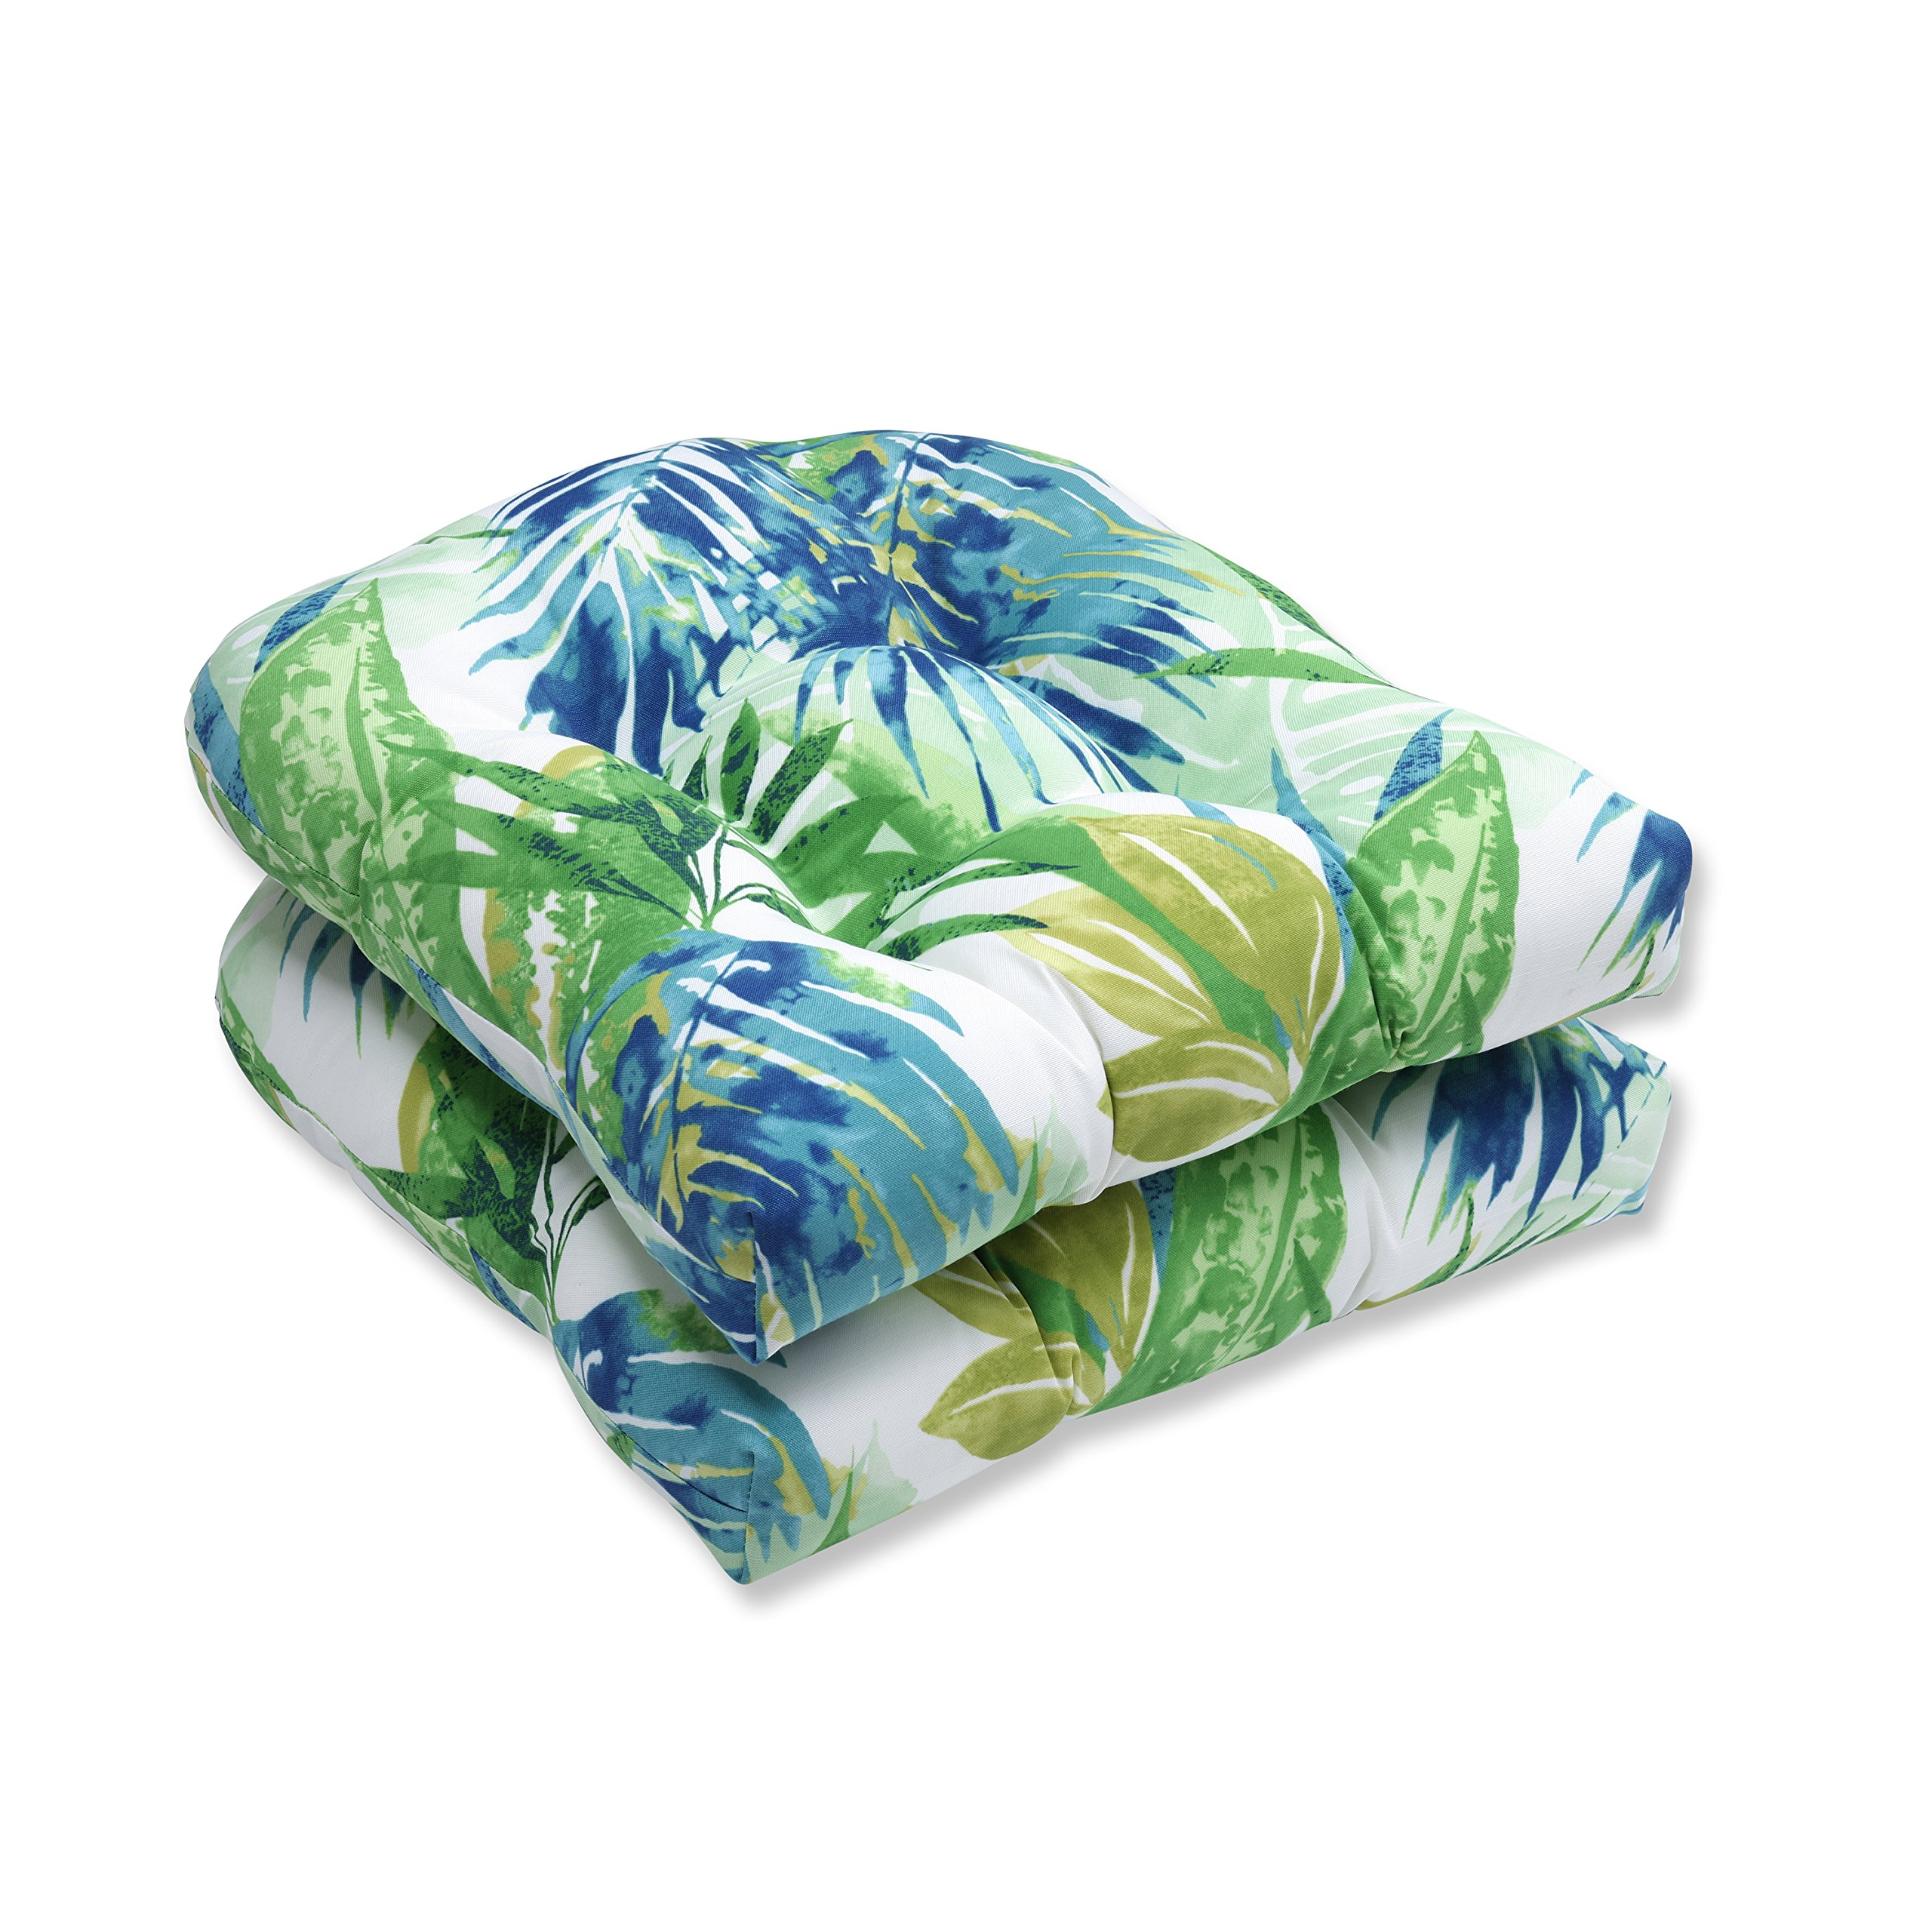 Pillow Perfect Outdoor/Indoor Soleil Wicker Seat Cushion, Set of 2, Blue/Green by Pillow Perfect